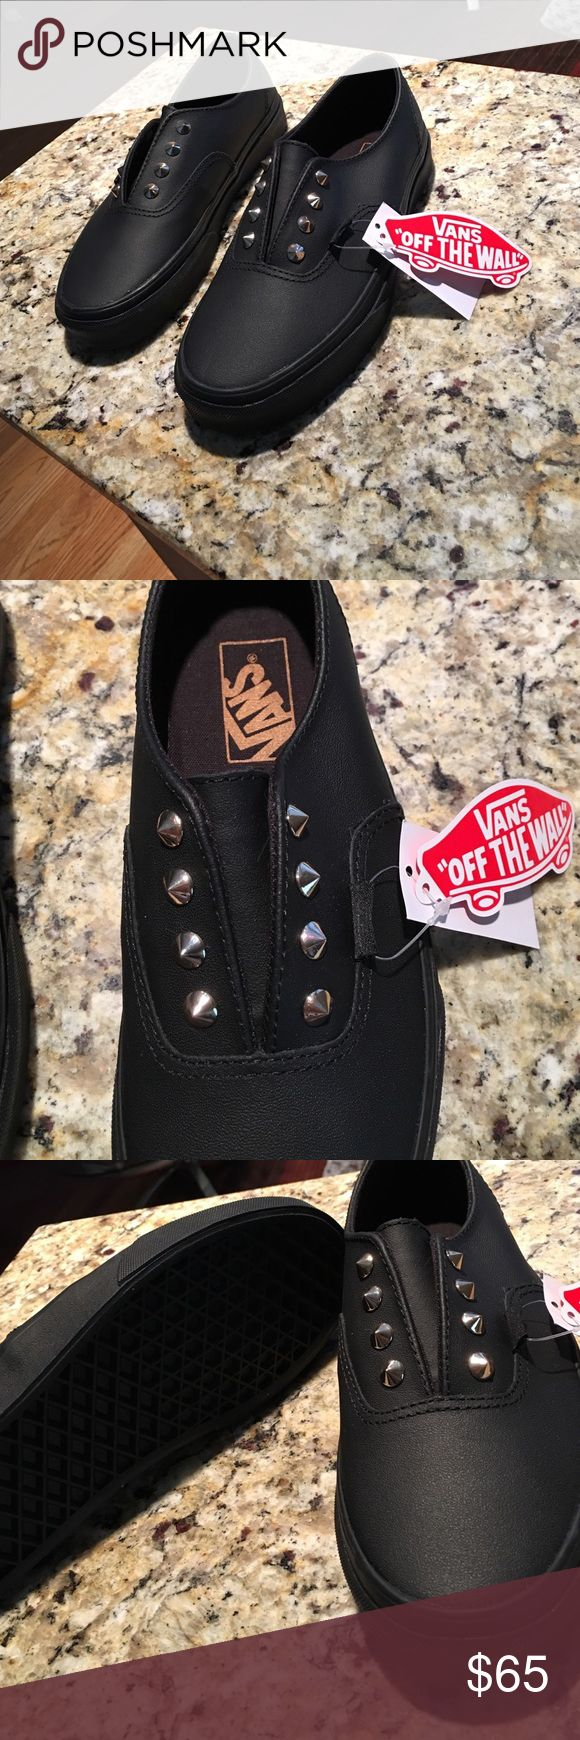 **NEW** Vans women's size 6.5 black ***NEW W/ TAGS NEVER WORN*** Black with gold studs vans woman's size 6.5 Vans Shoes Sneakers